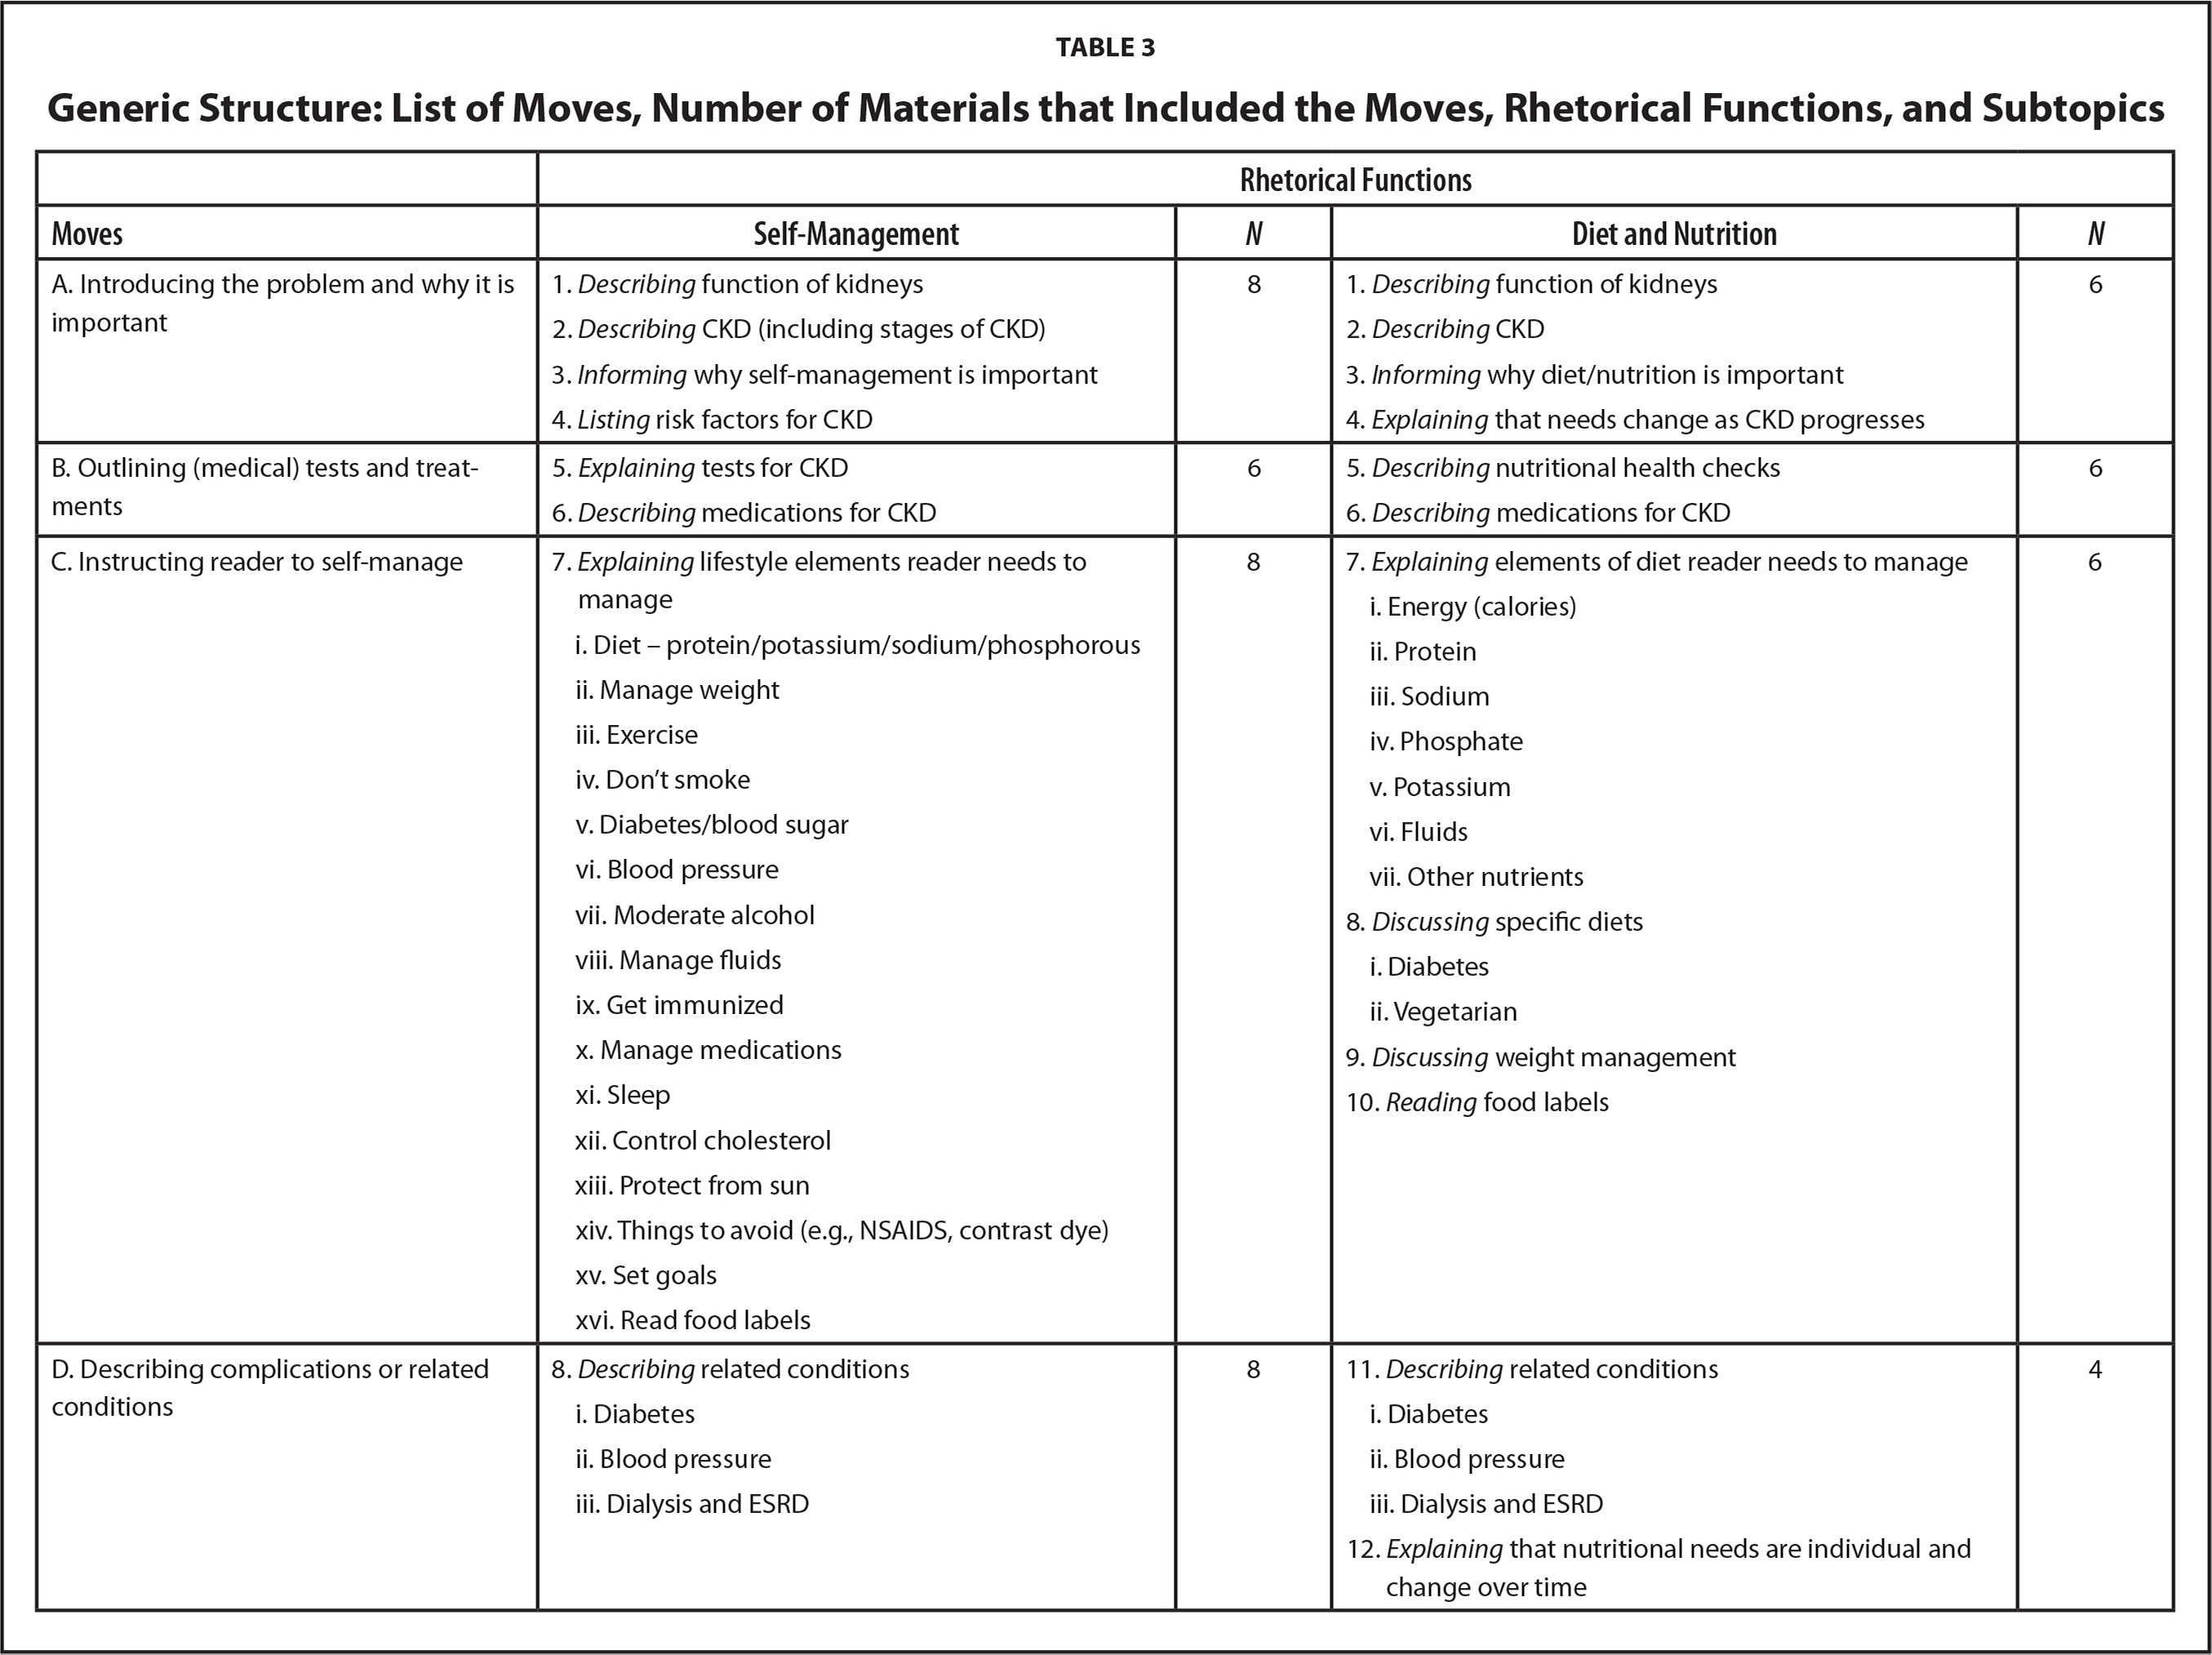 Generic Structure: List of Moves, Number of Materials that Included the Moves, Rhetorical Functions, and Subtopics